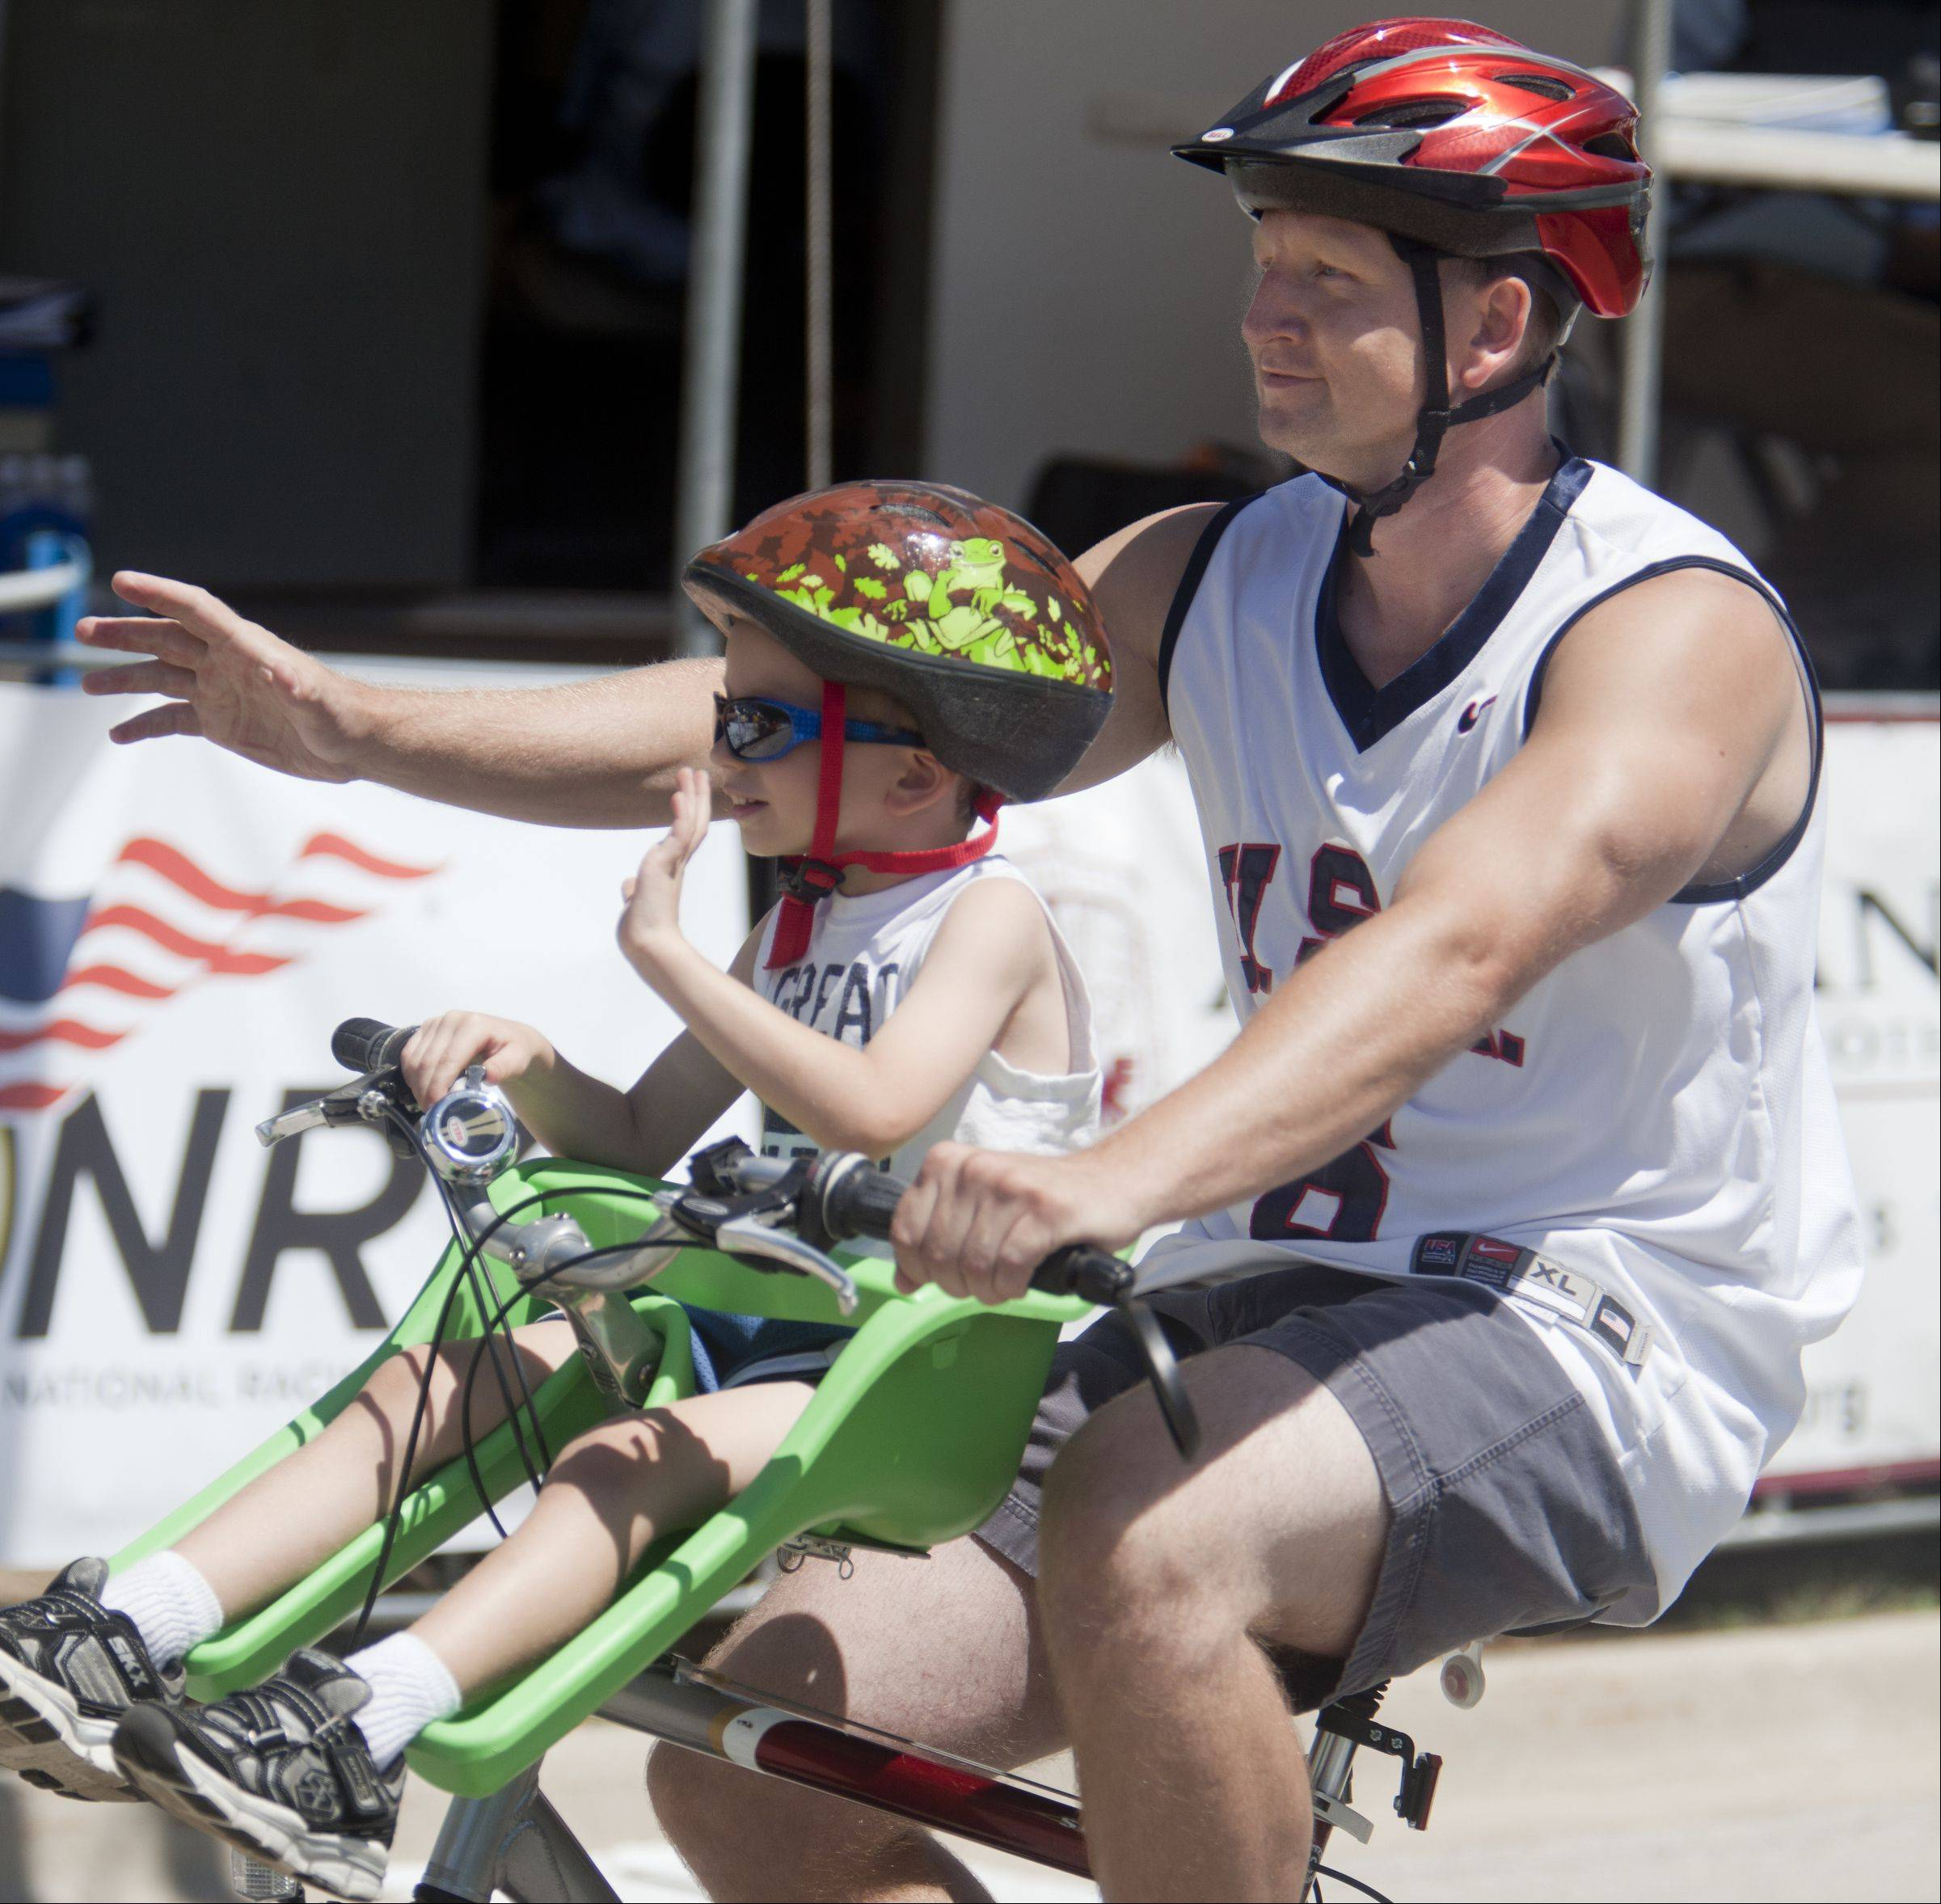 David Brand and his son Nolan, 4, cross the finish line during the Elk Grove Trustee fun run at the third day of the Tour of Elk Grove.